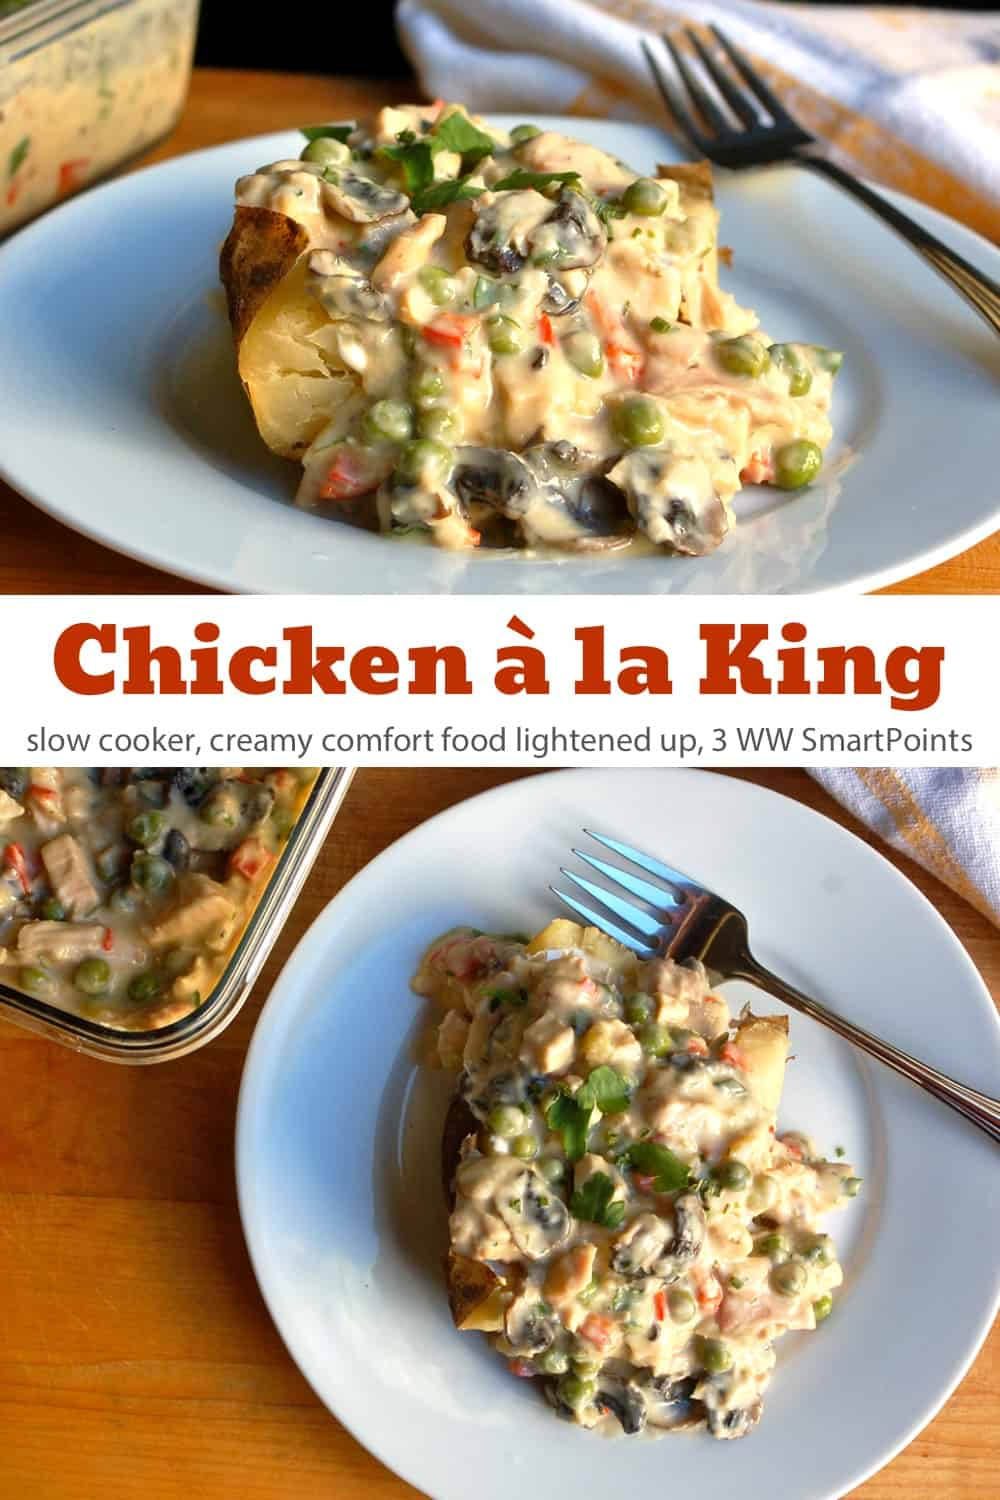 Creamy and comforting, this easy slow cooker chicken ala king is a family favorite. Serve over rice, biscuits or potatoes, if desired. #slowcookerchickenalaking #slowcooker #chickenalaking